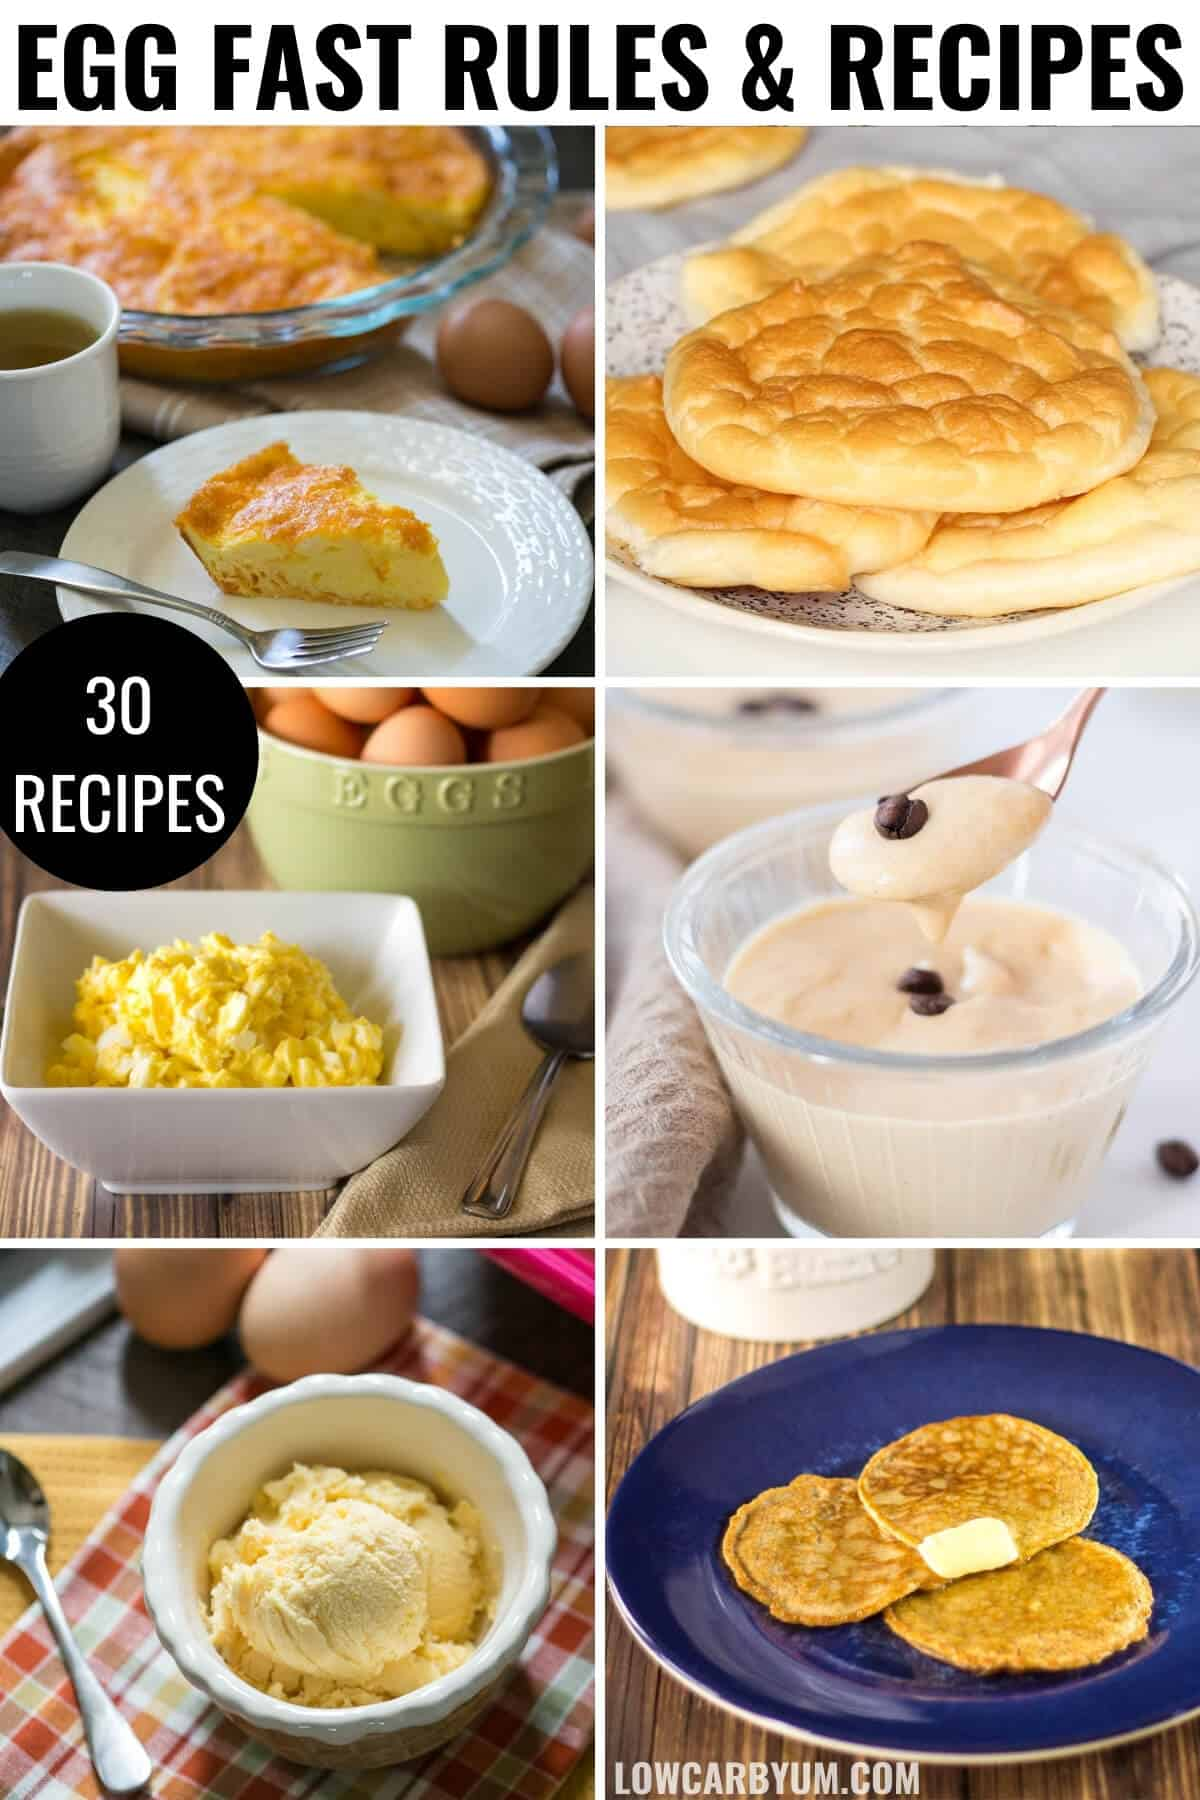 keto egg fast diet recipes cover image